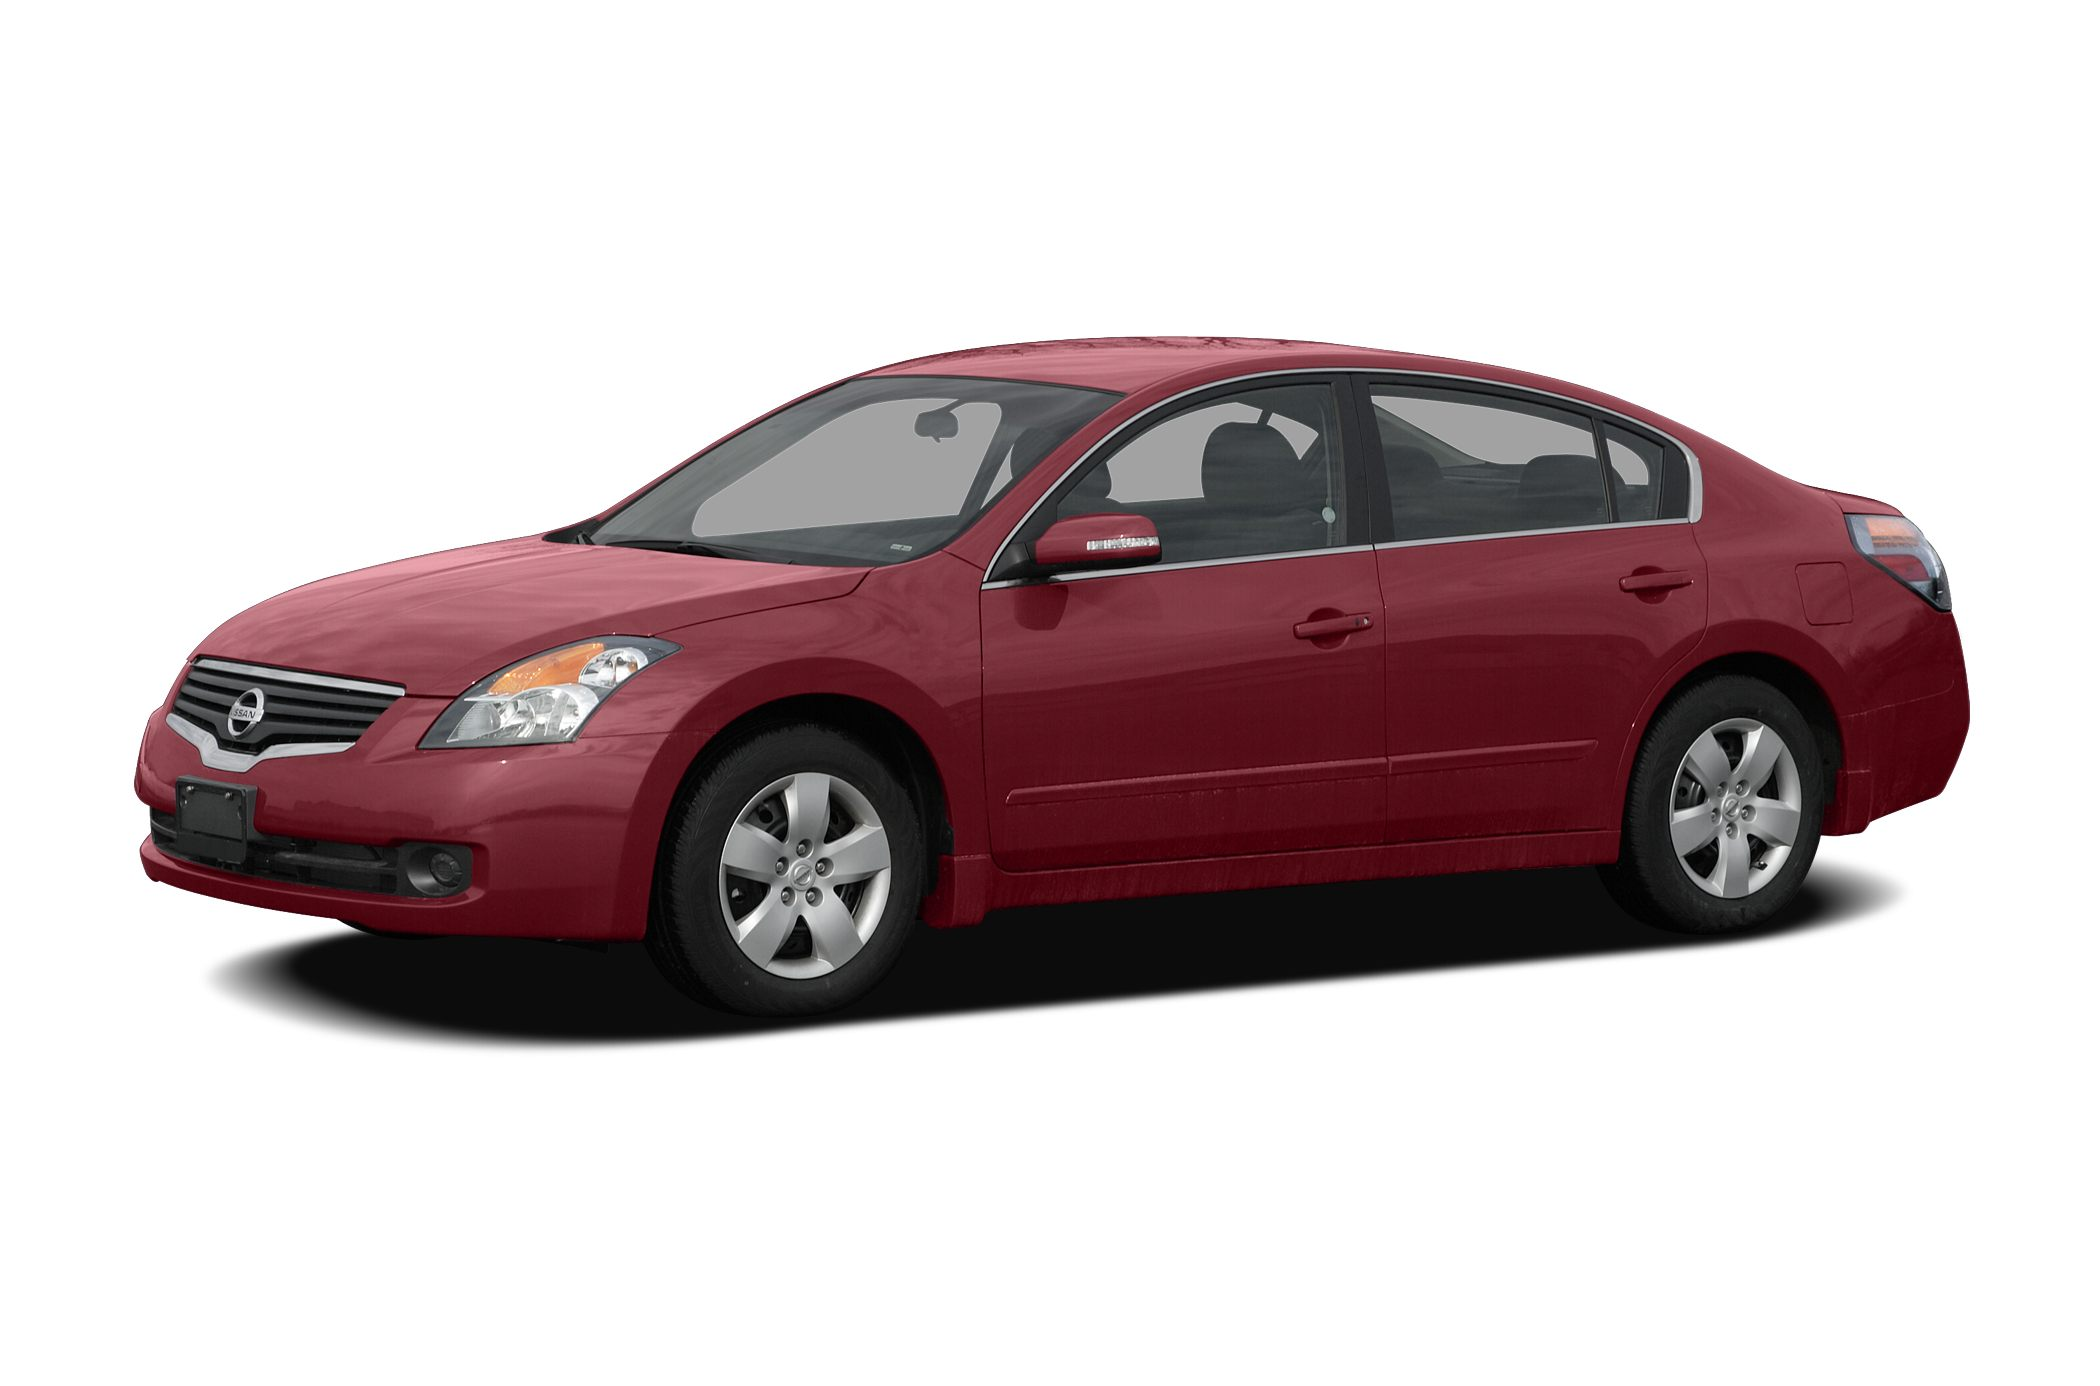 2008 Nissan Altima Specs And Prices